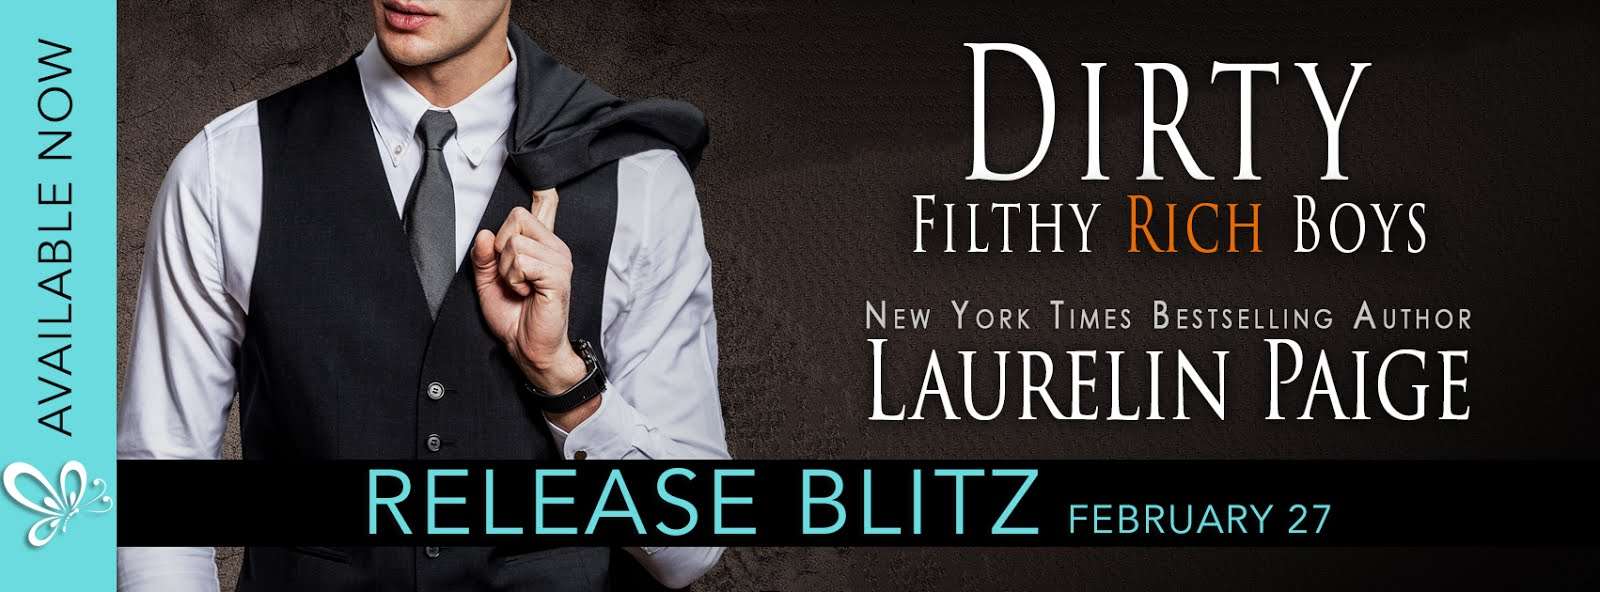 Dirty Filthy Rich Boys release Blitz